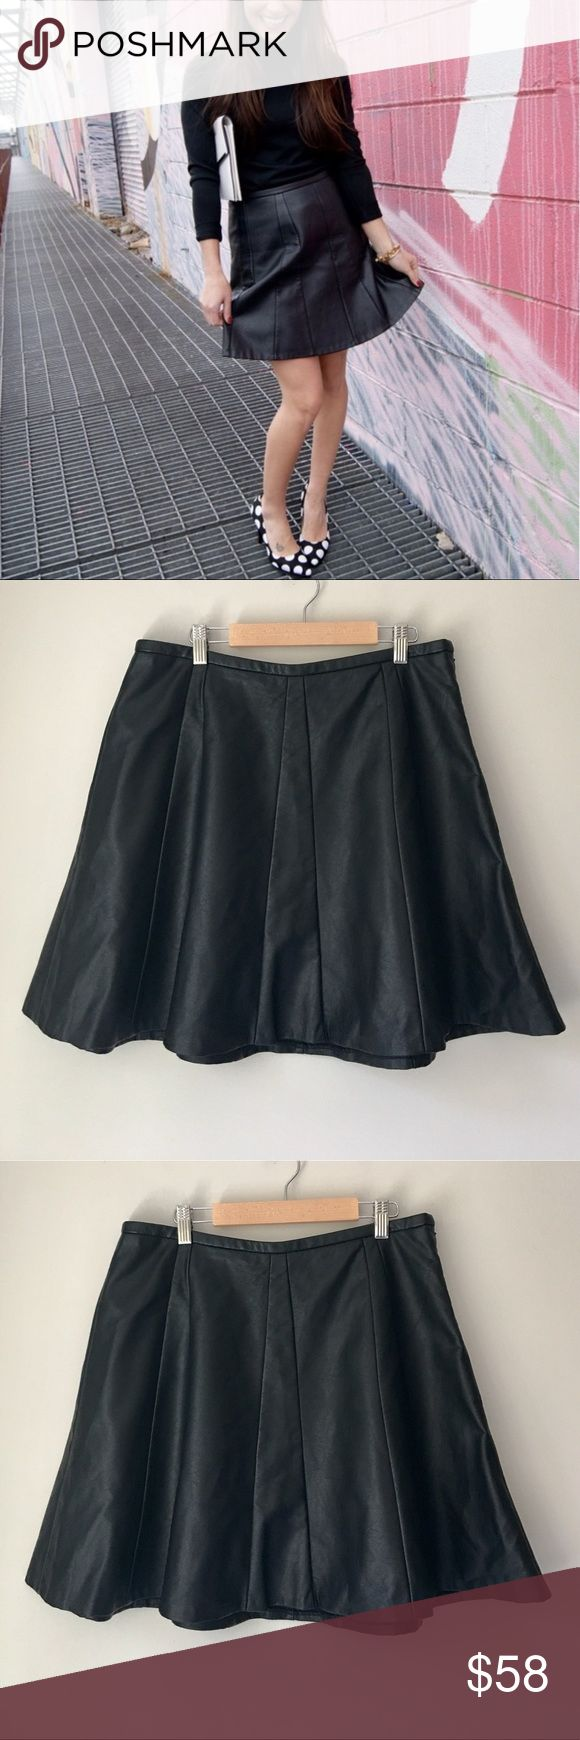 The Limited Black Faux Leather Skater Skirt Stunning black Pieced Faux leather skater skirt by The Limited. Size Medium. Excellent preowned condition. The Limited Skirts